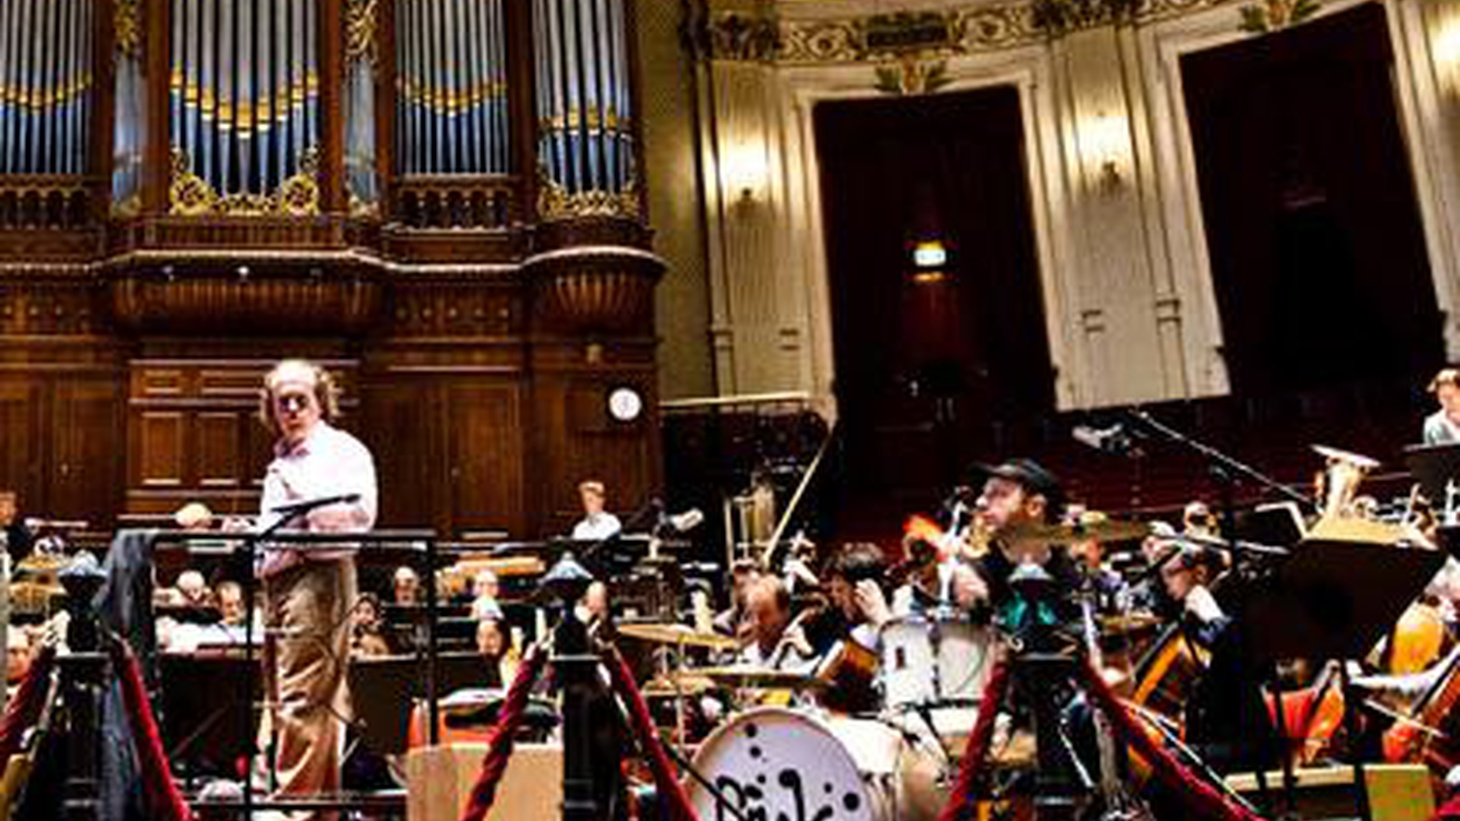 Singer-songwriter Fink had the distinct honor to work with The Royal Concertegebouw Orchestra and see his songs turned into a work of symphonic genius.